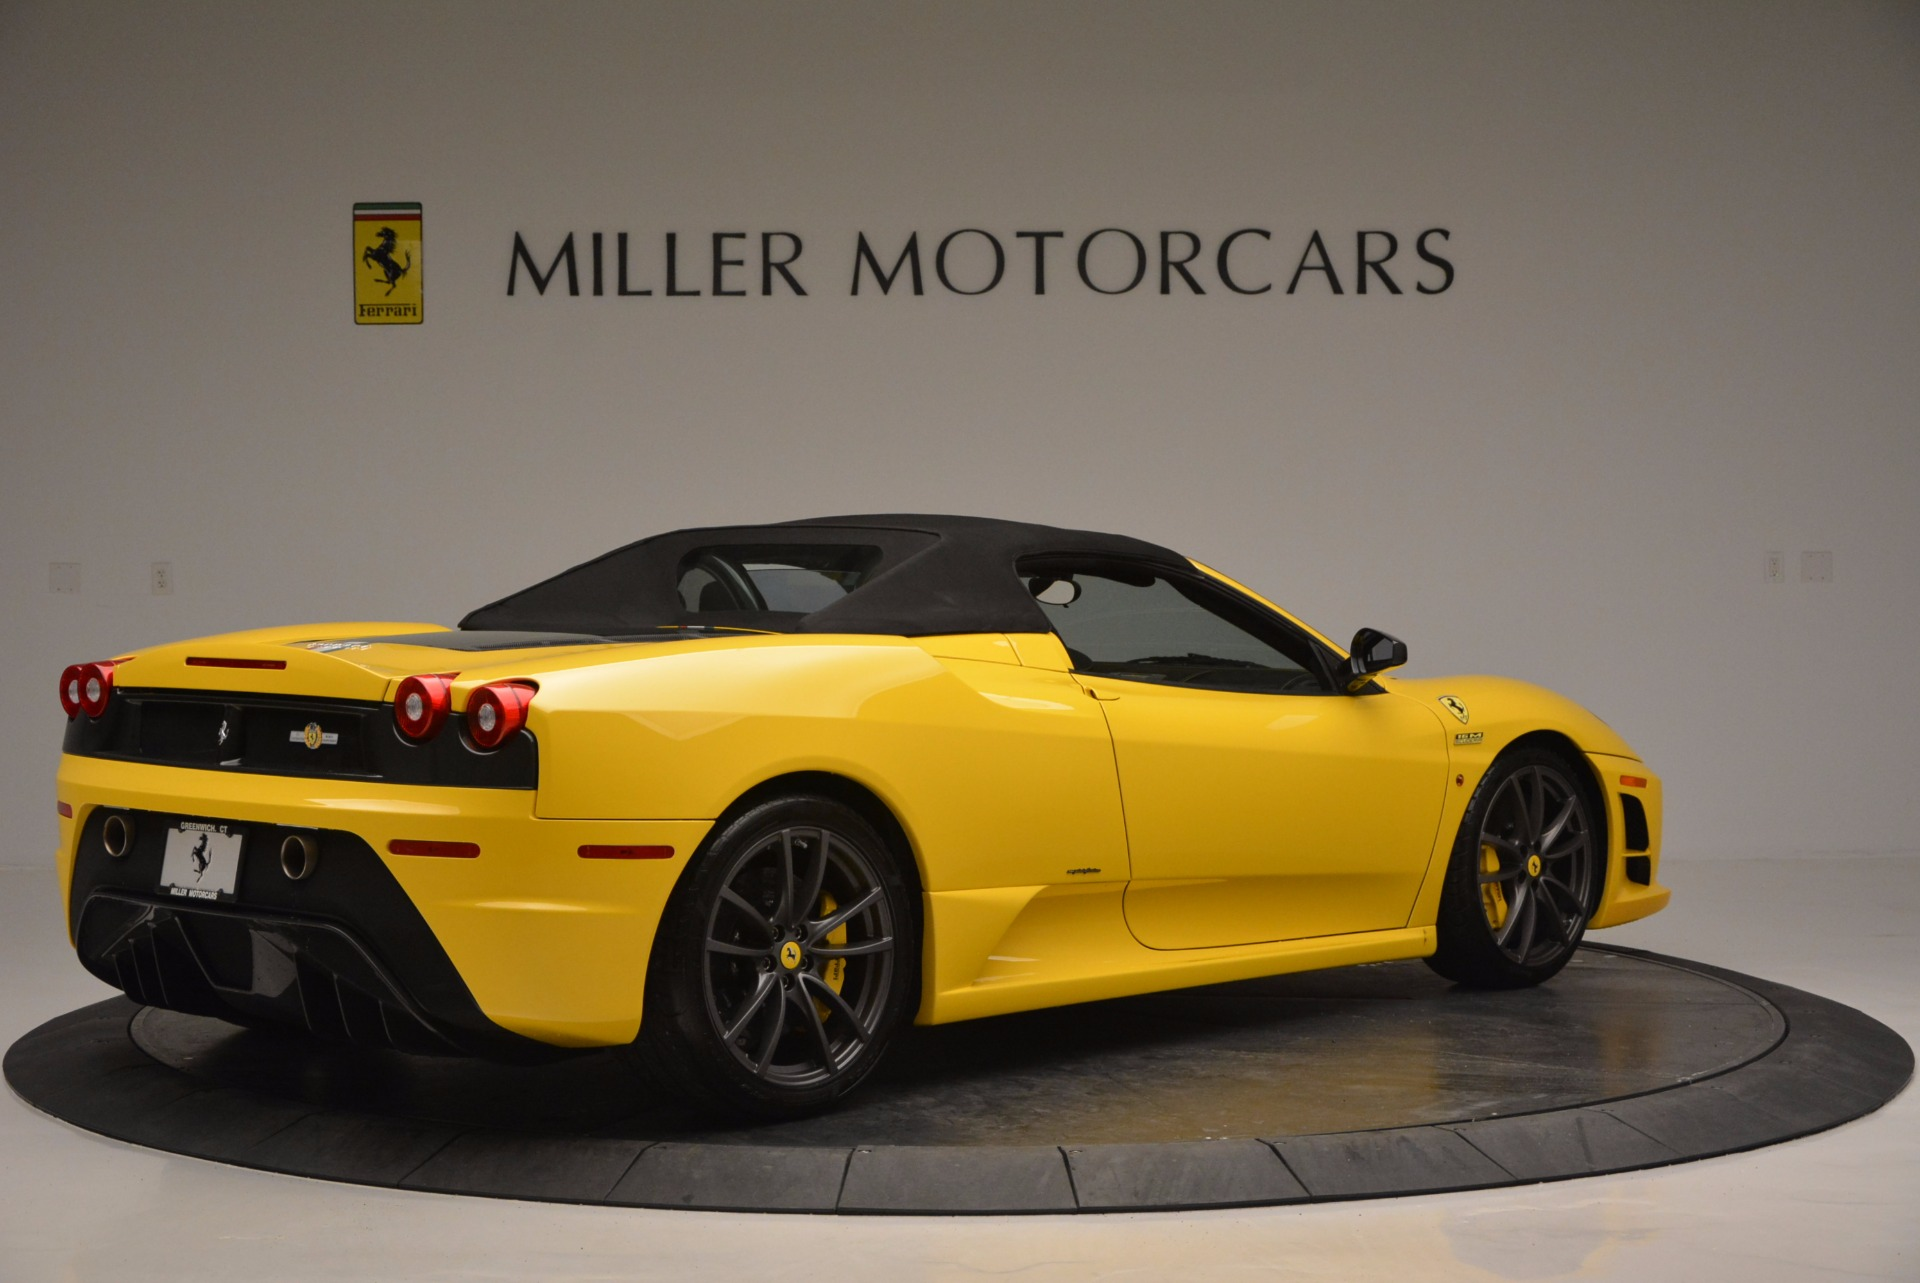 Used 2009 Ferrari F430 Scuderia 16M For Sale In Greenwich, CT 856_p20